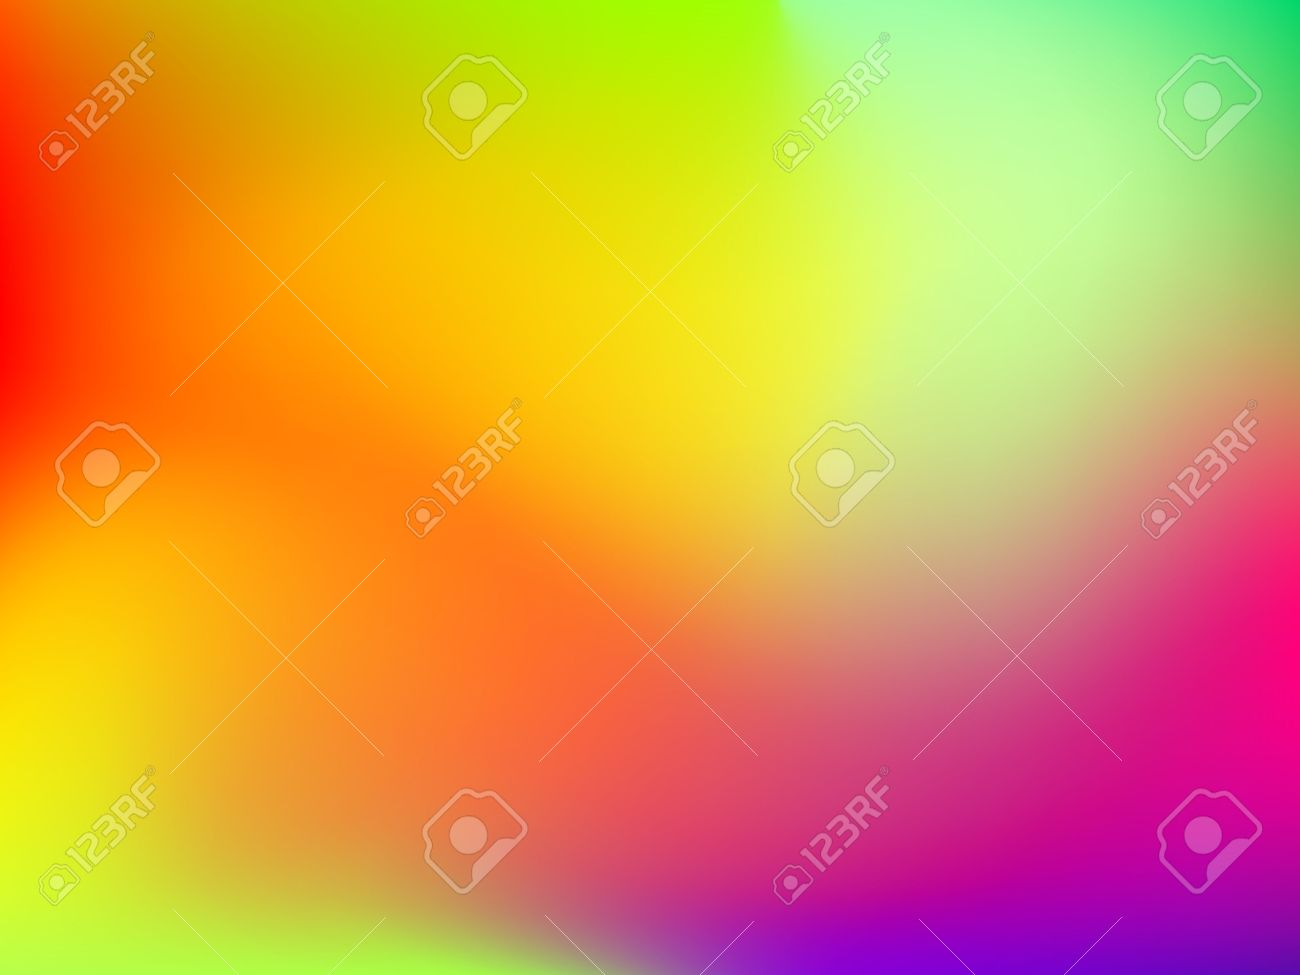 Abstract blur colorful gradient background with red, yellow, blue, cyan and green colors for deign concepts, wallpapers, web, presentations and prints. Vector illustration. - 58046046